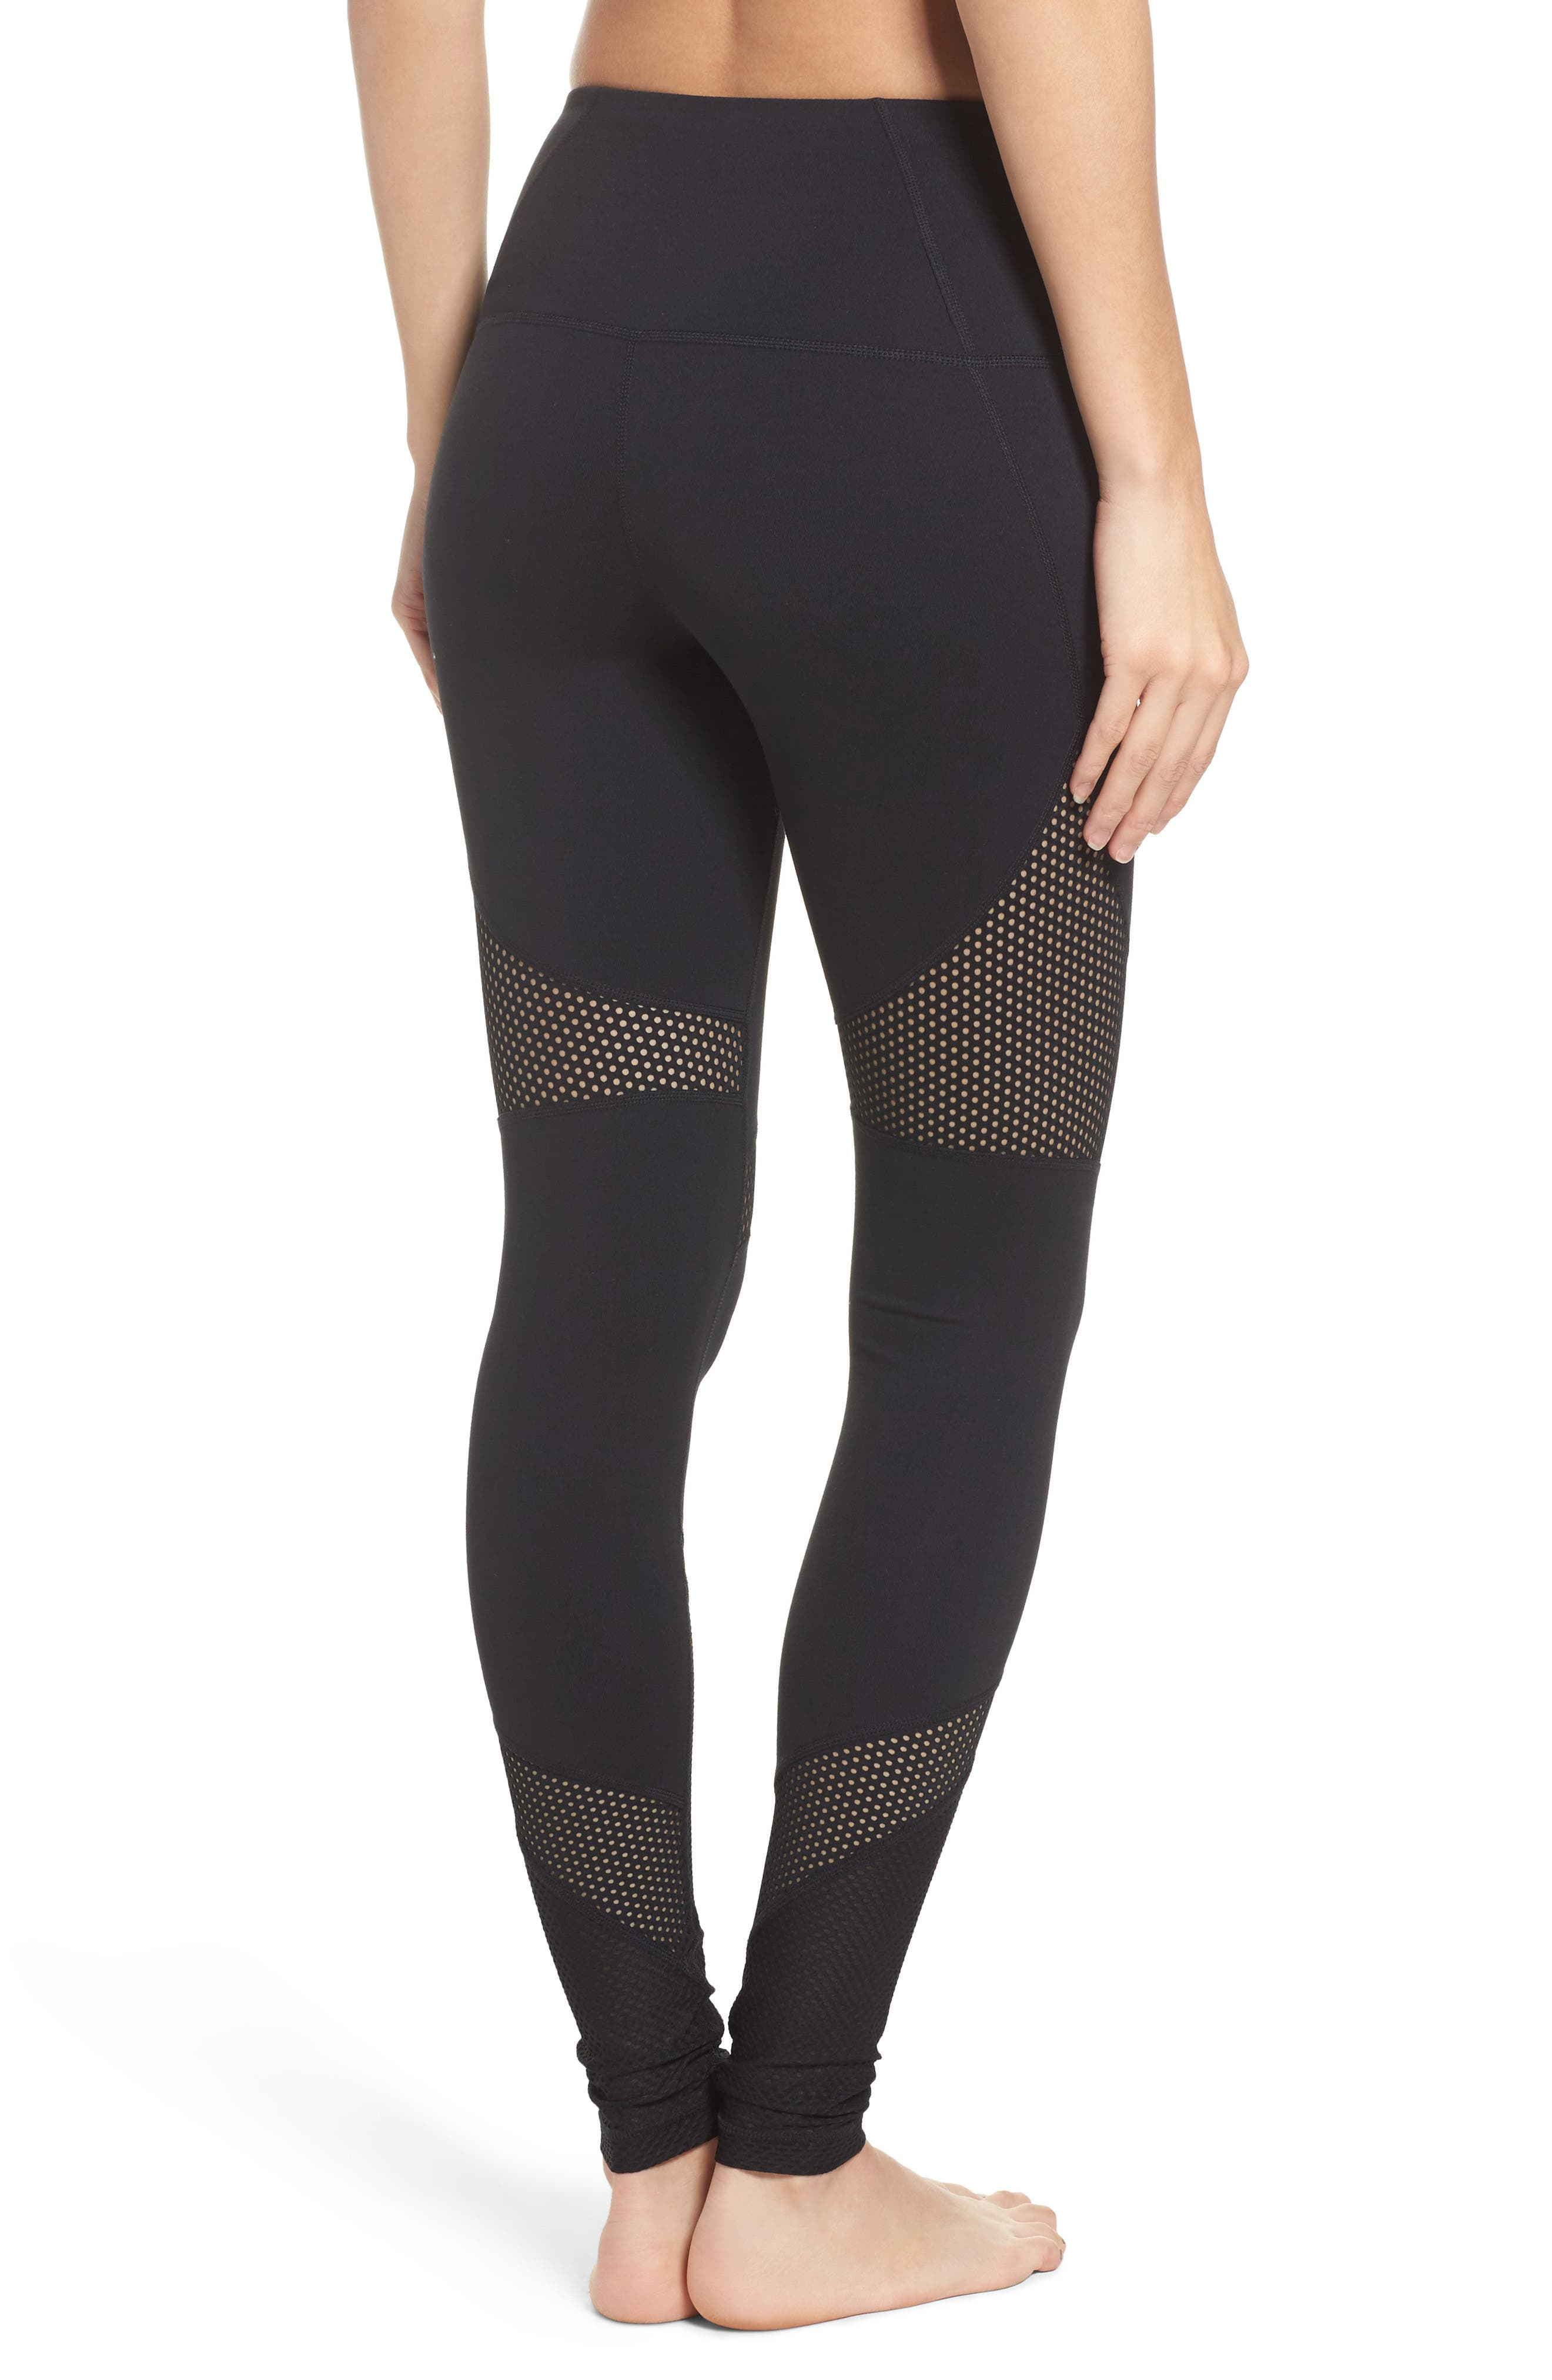 Out of Bounds High Waist Leggings,                             Alternate thumbnail 2, color,                             001